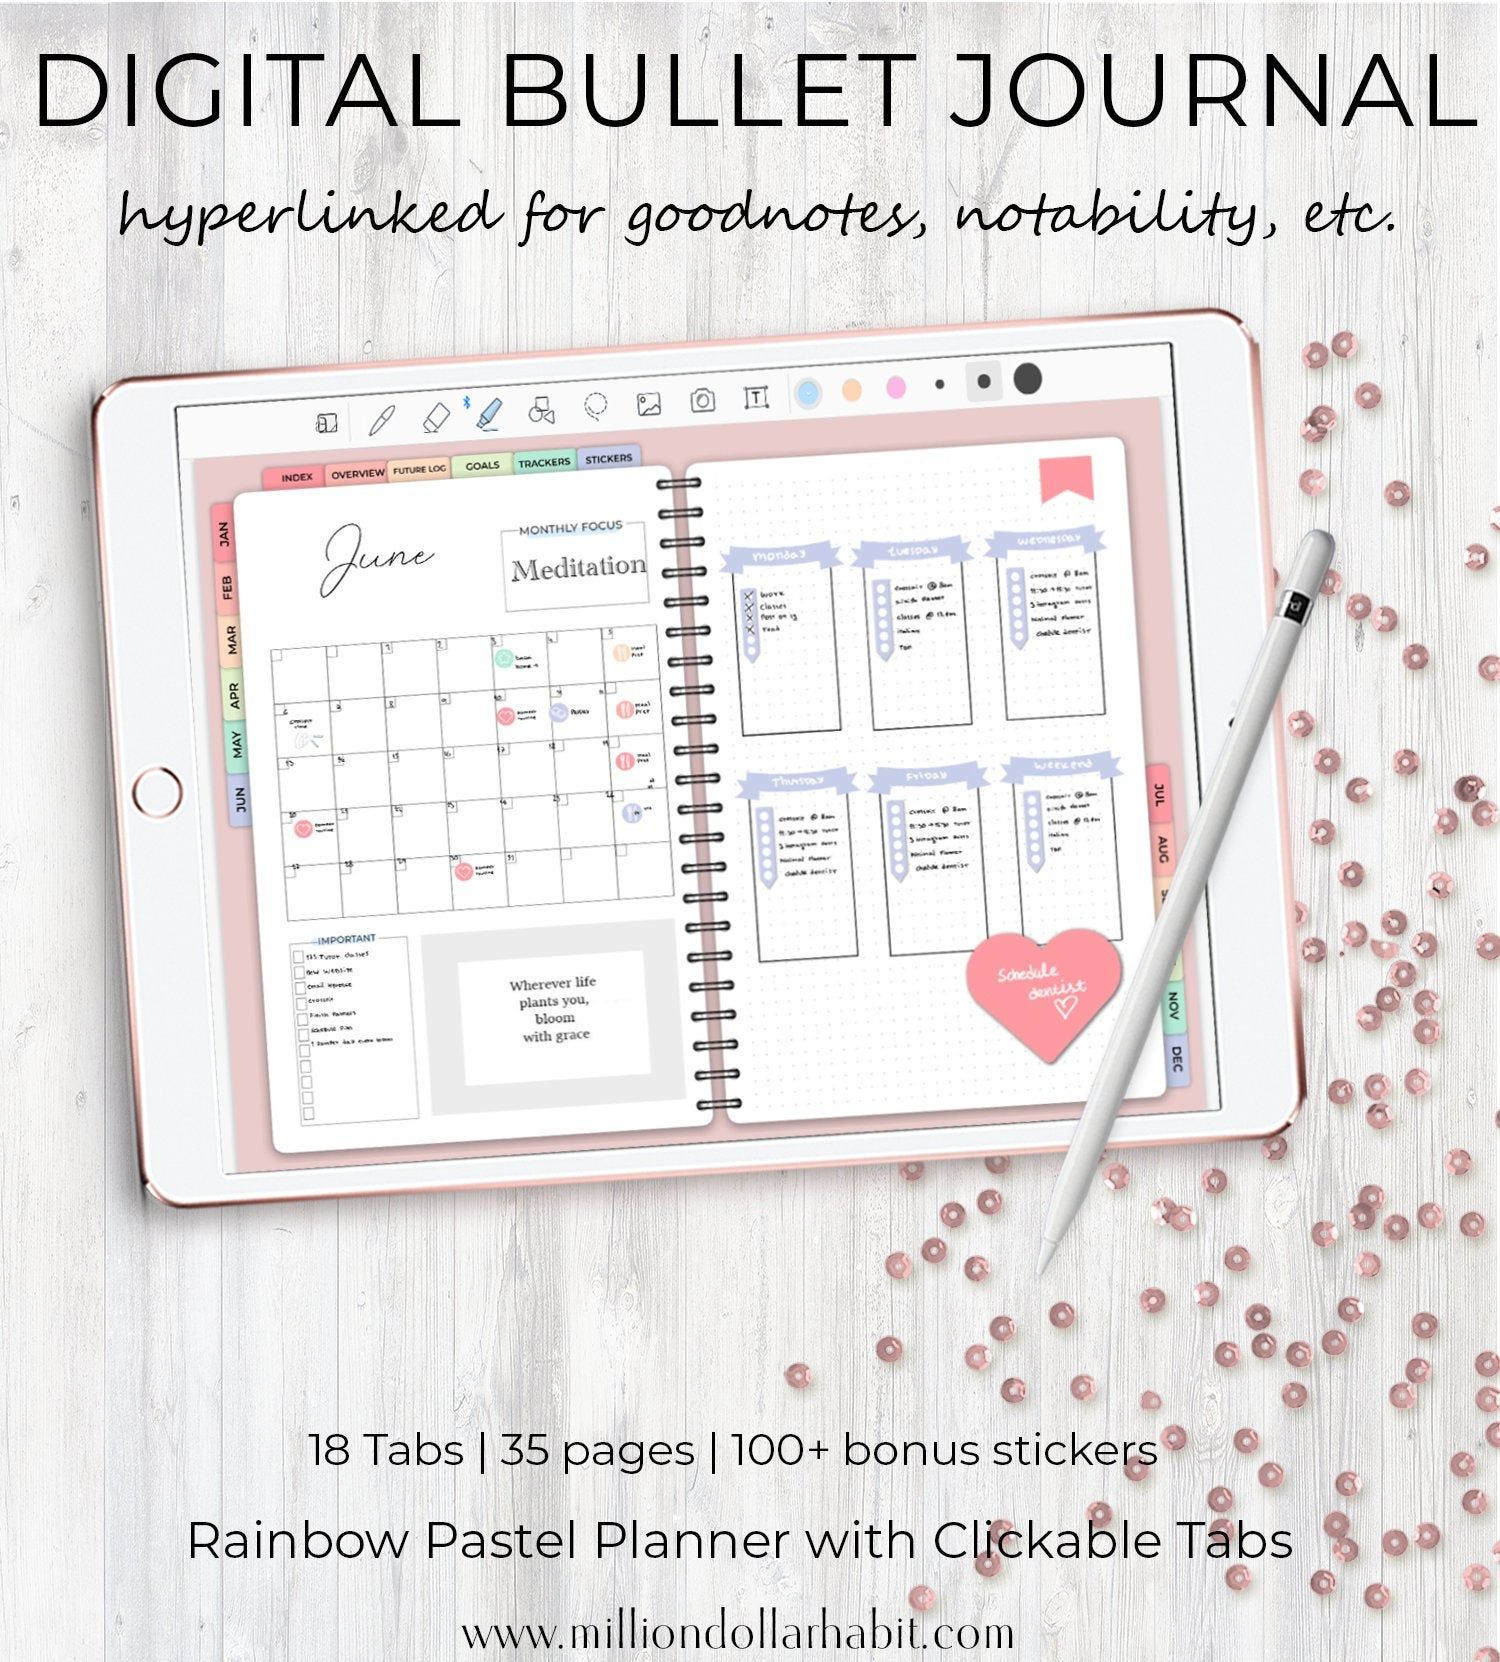 Digital Bullet Journal for Goodnotes and Notability Bullet | Etsy